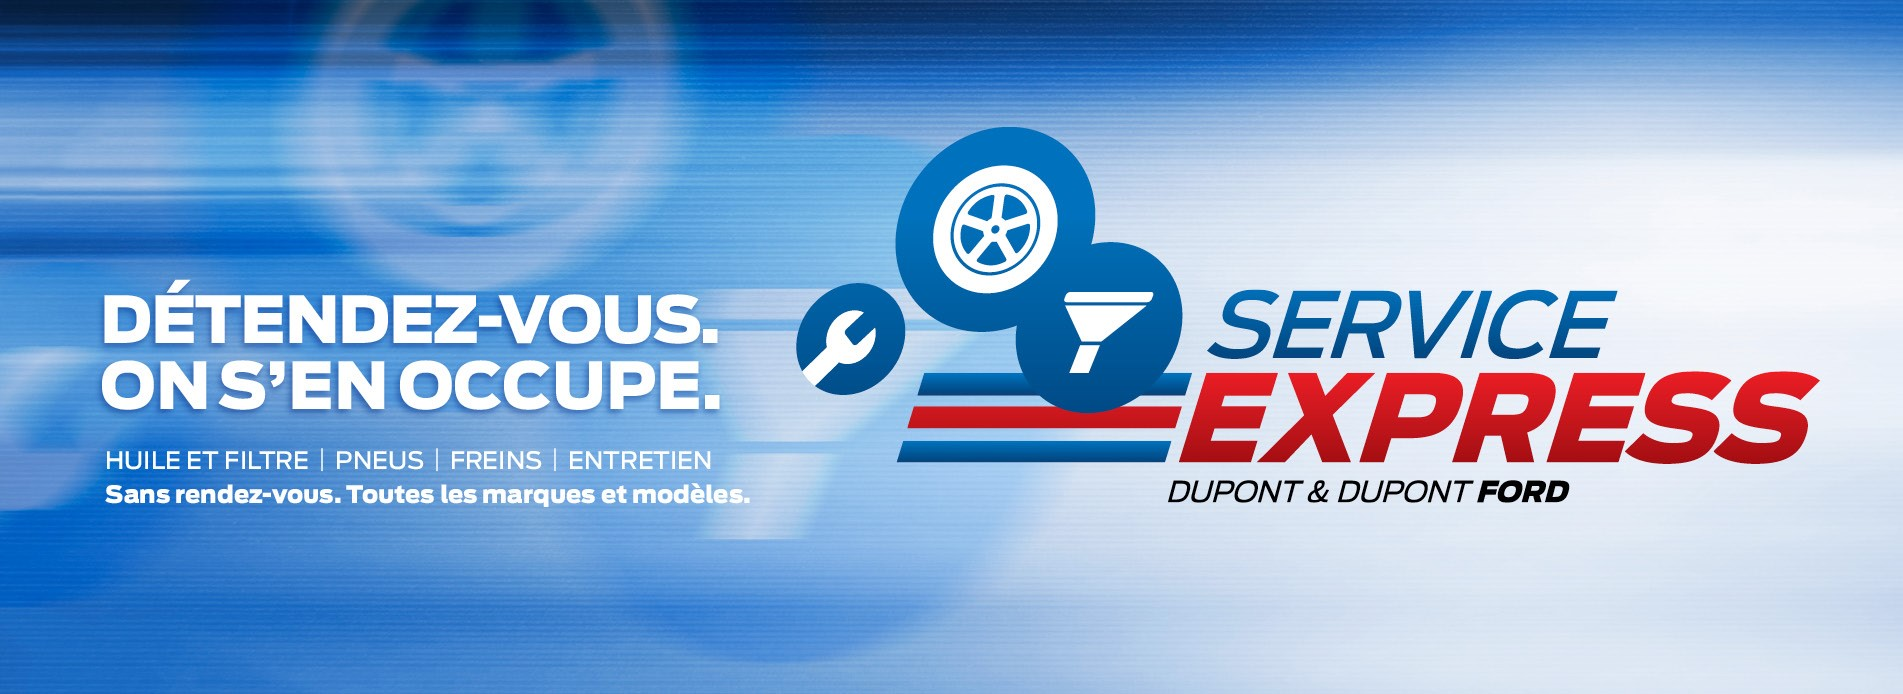 Service express rapide Dupont Fords Gatineau hull